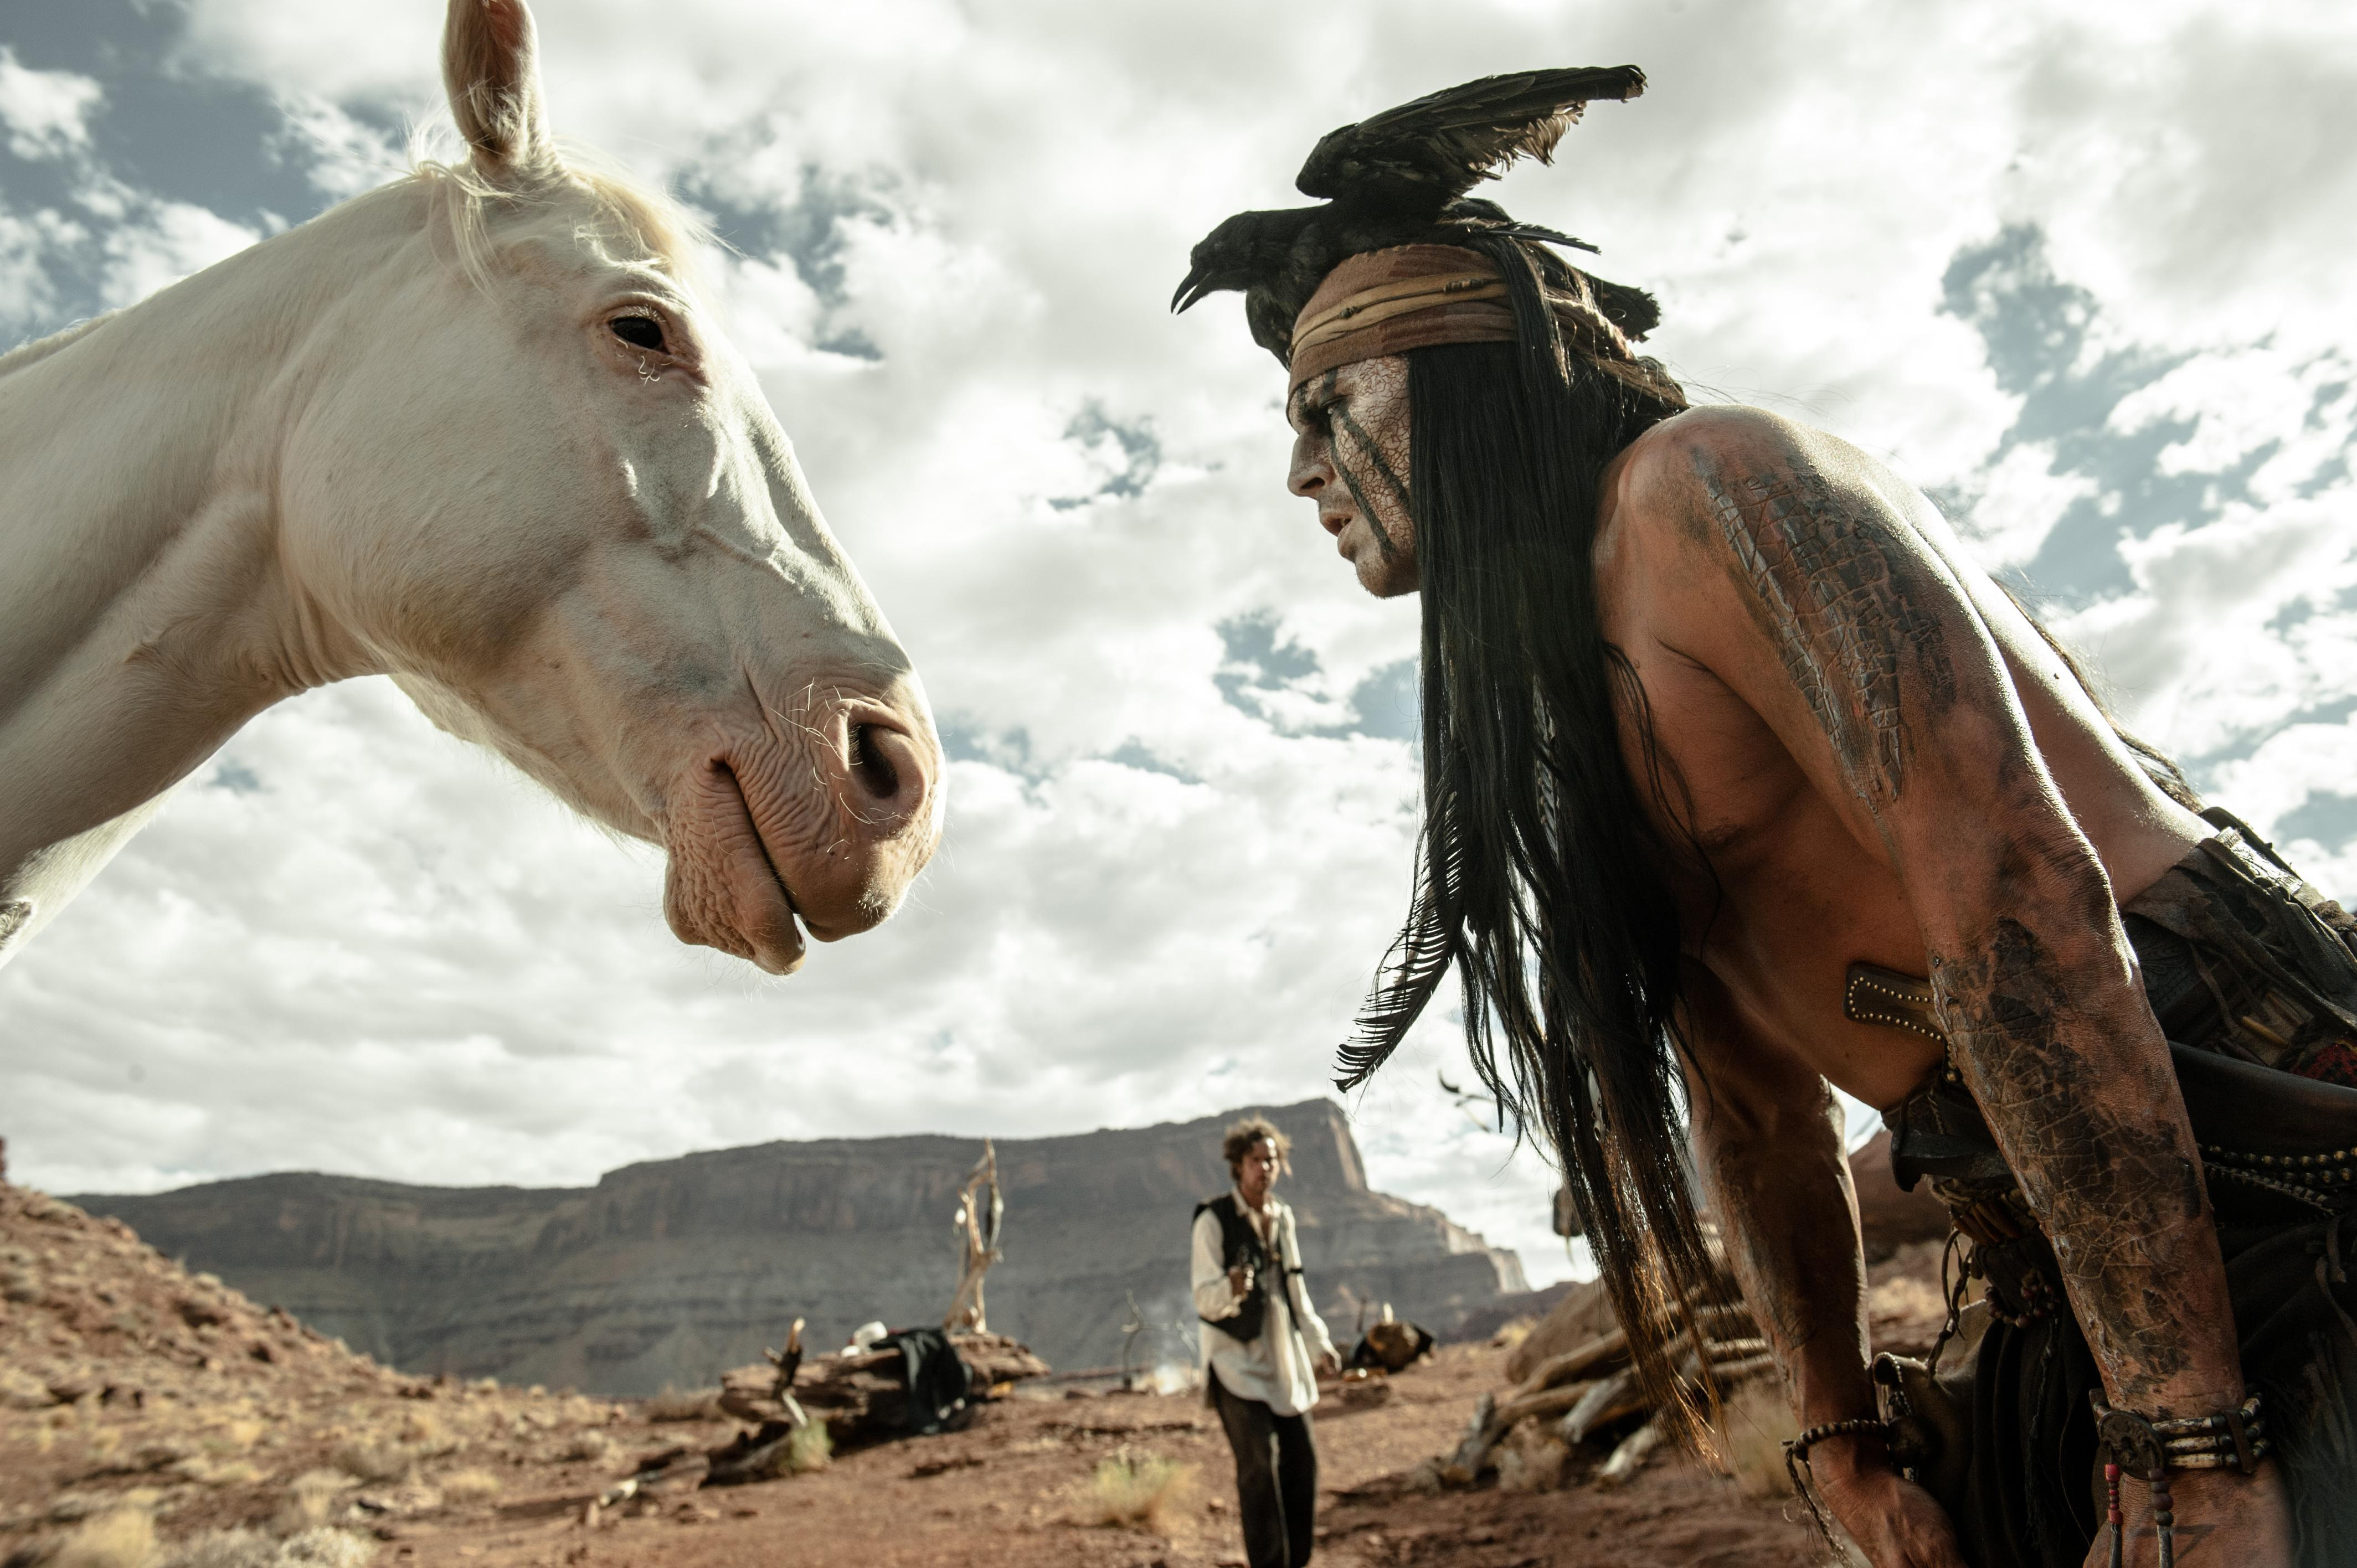 Counterpoint: an appreciation of 'The Lone Ranger'